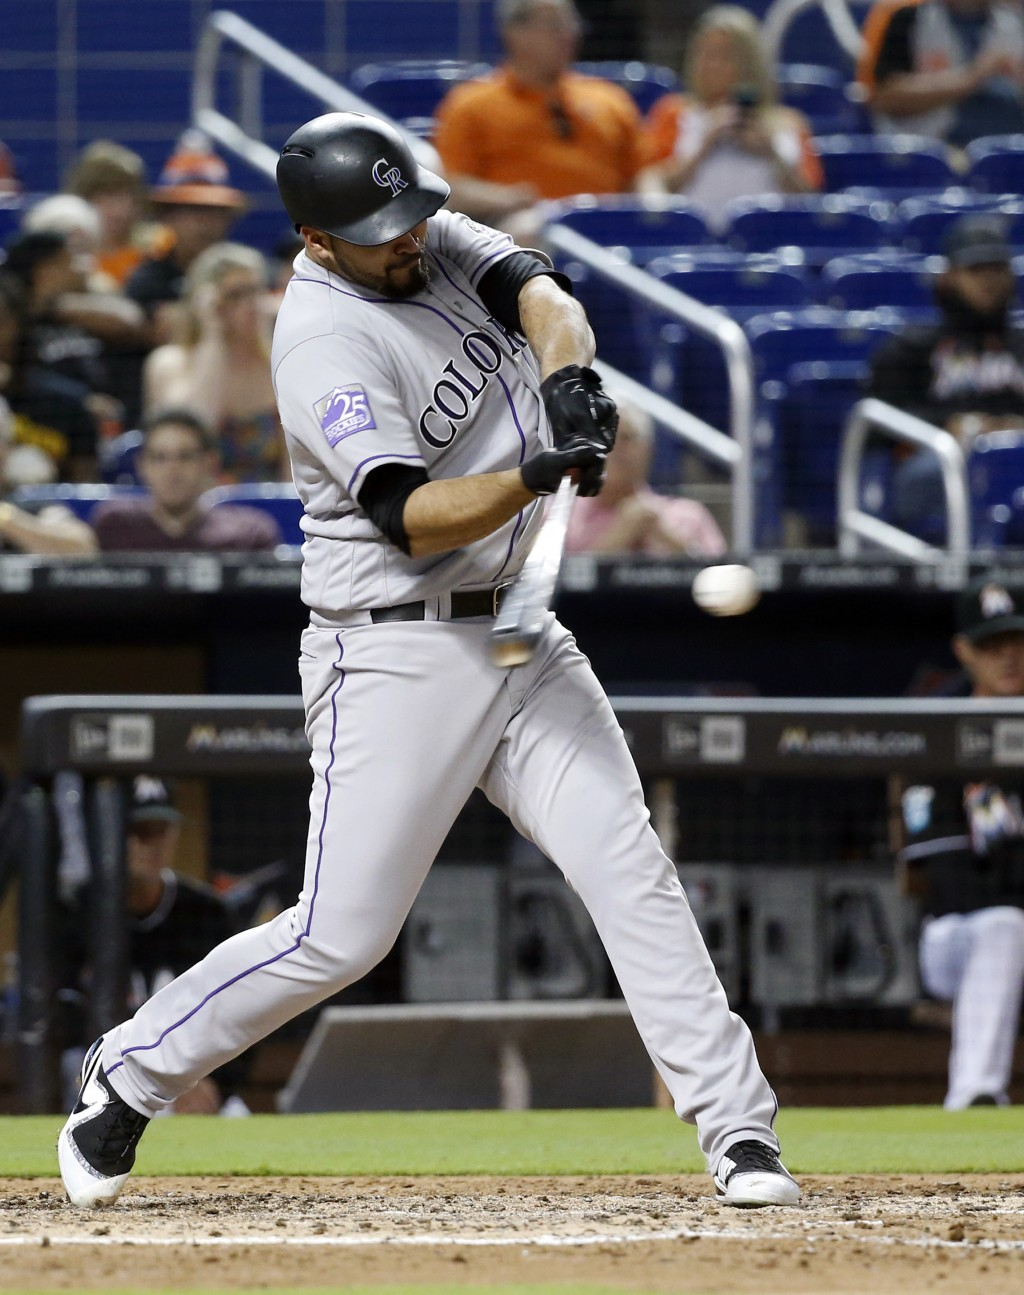 Colorado Rockies' Antonio Senzatela hits a double scoring Gerardo Parra during the fifth inning of a baseball game against the Miami Marlins, Friday, ...